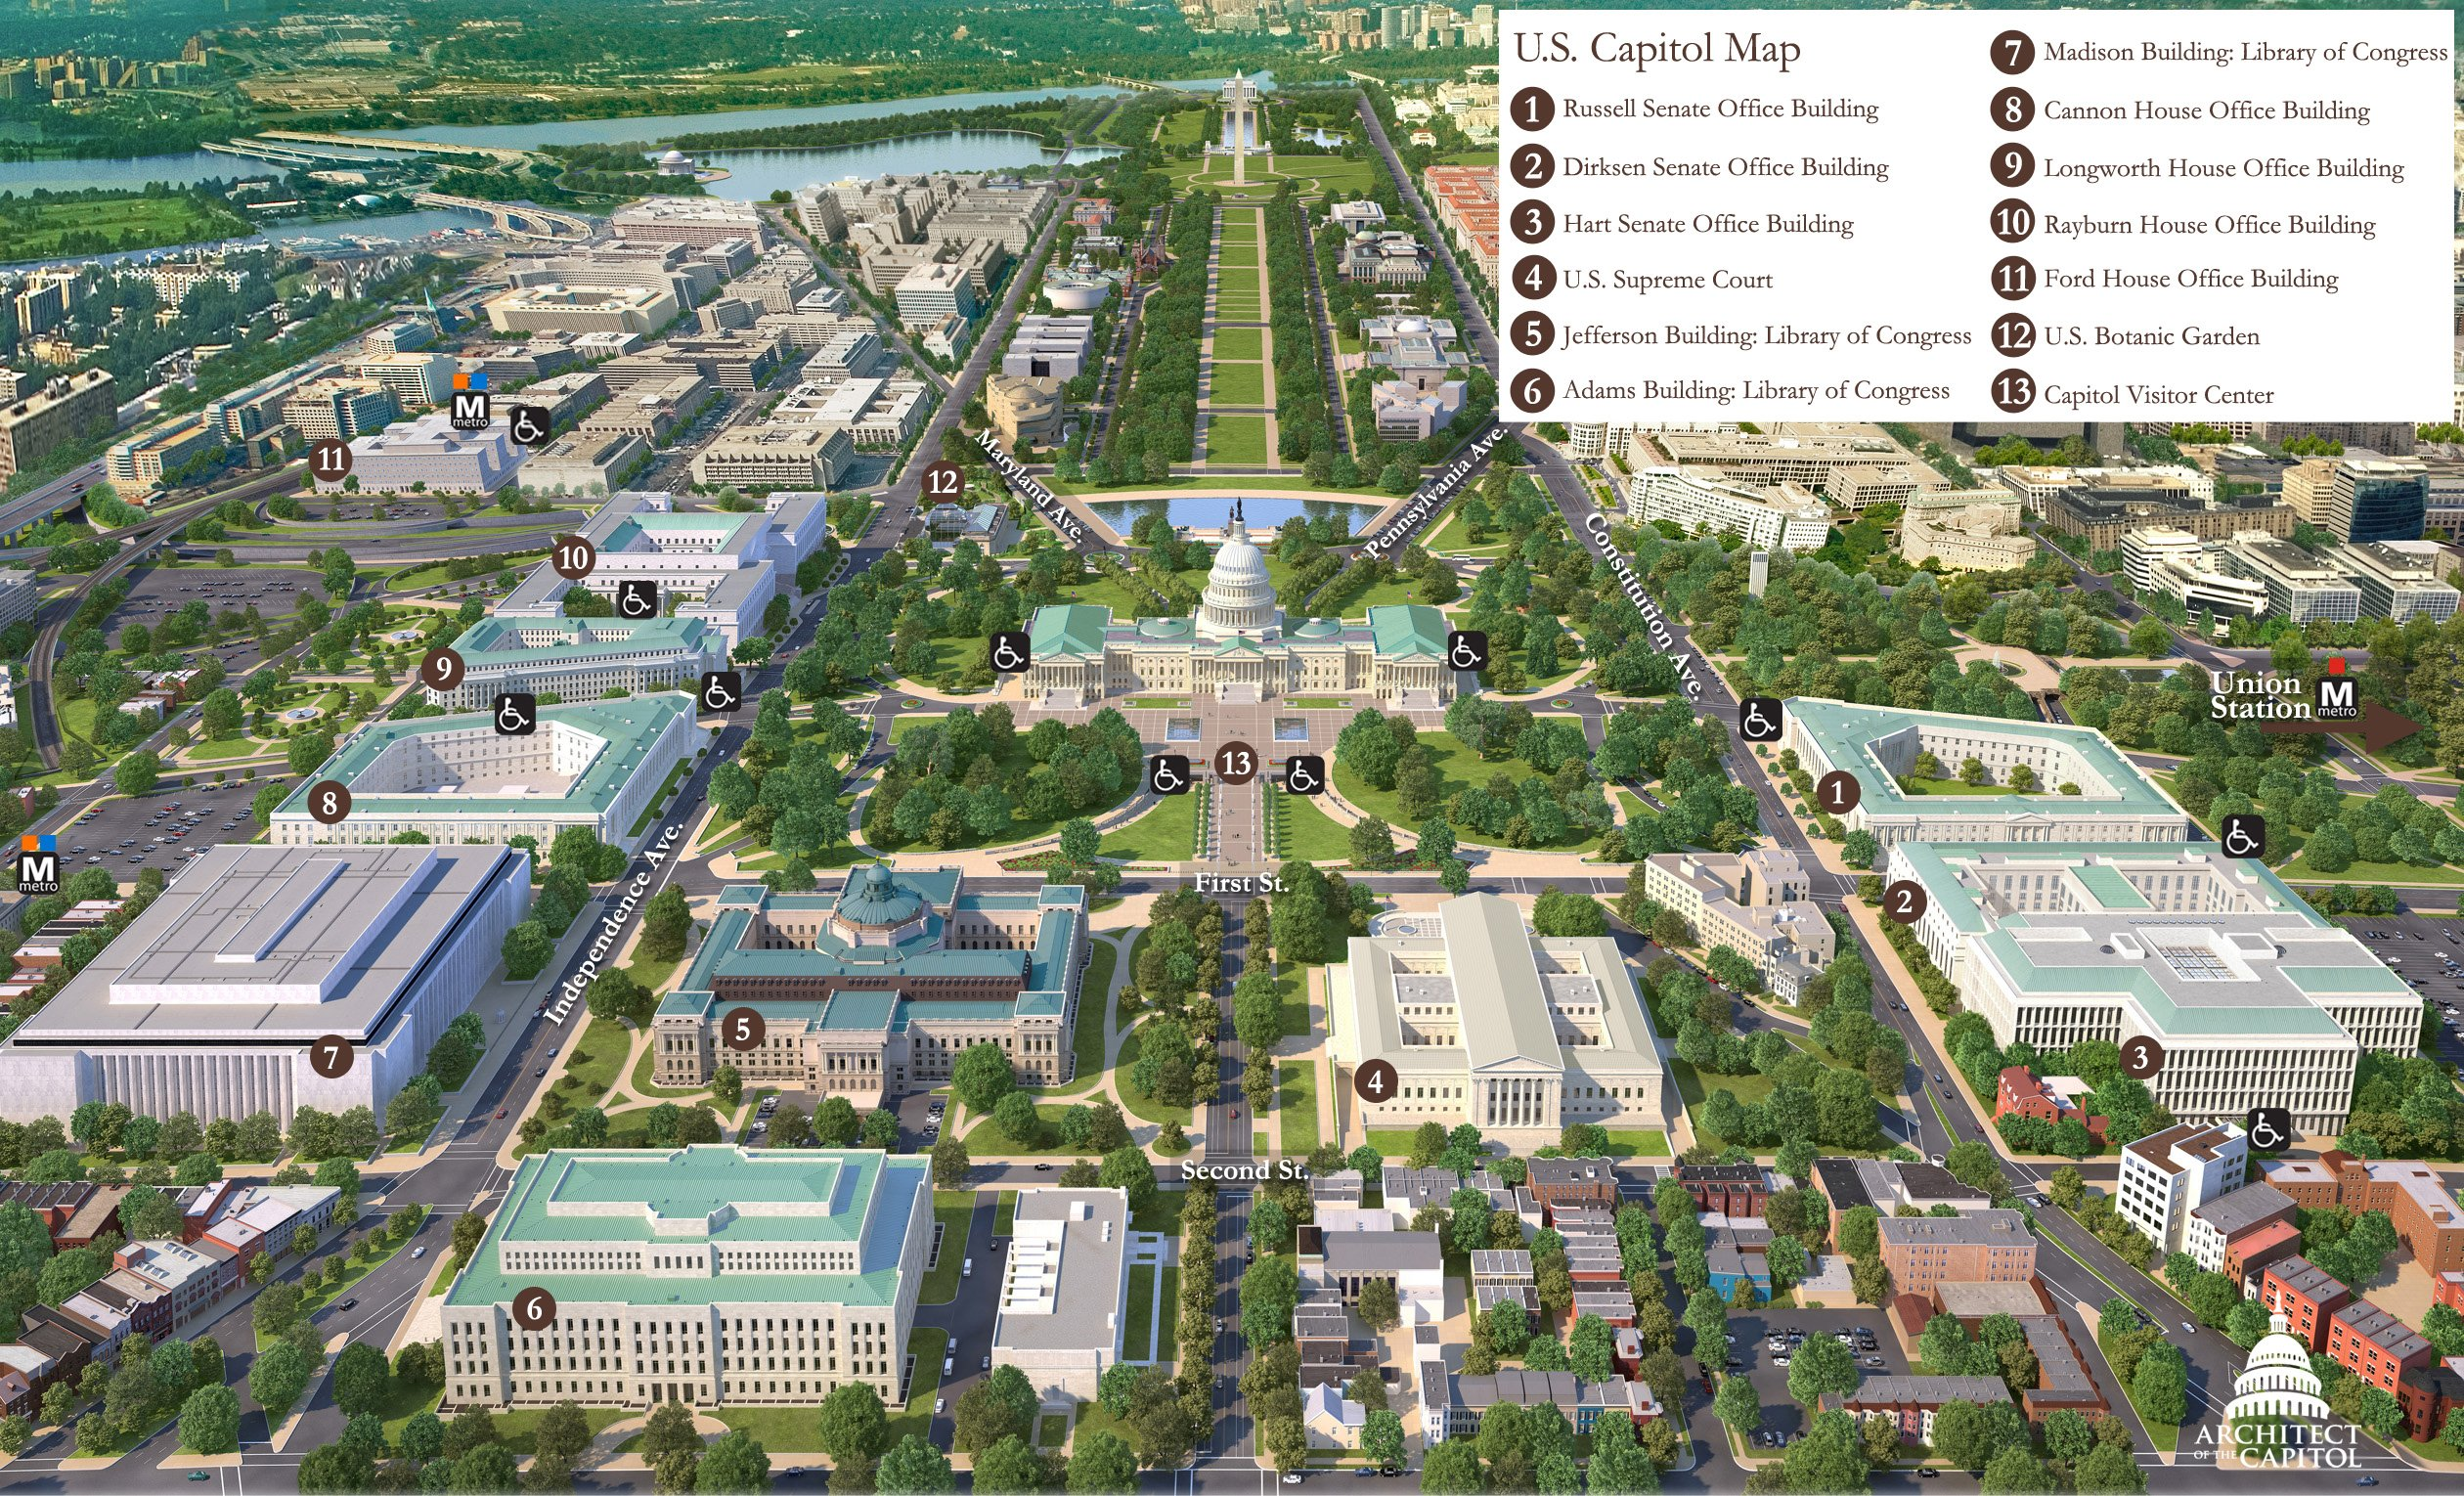 U.S. Capitol Map - Washington DC